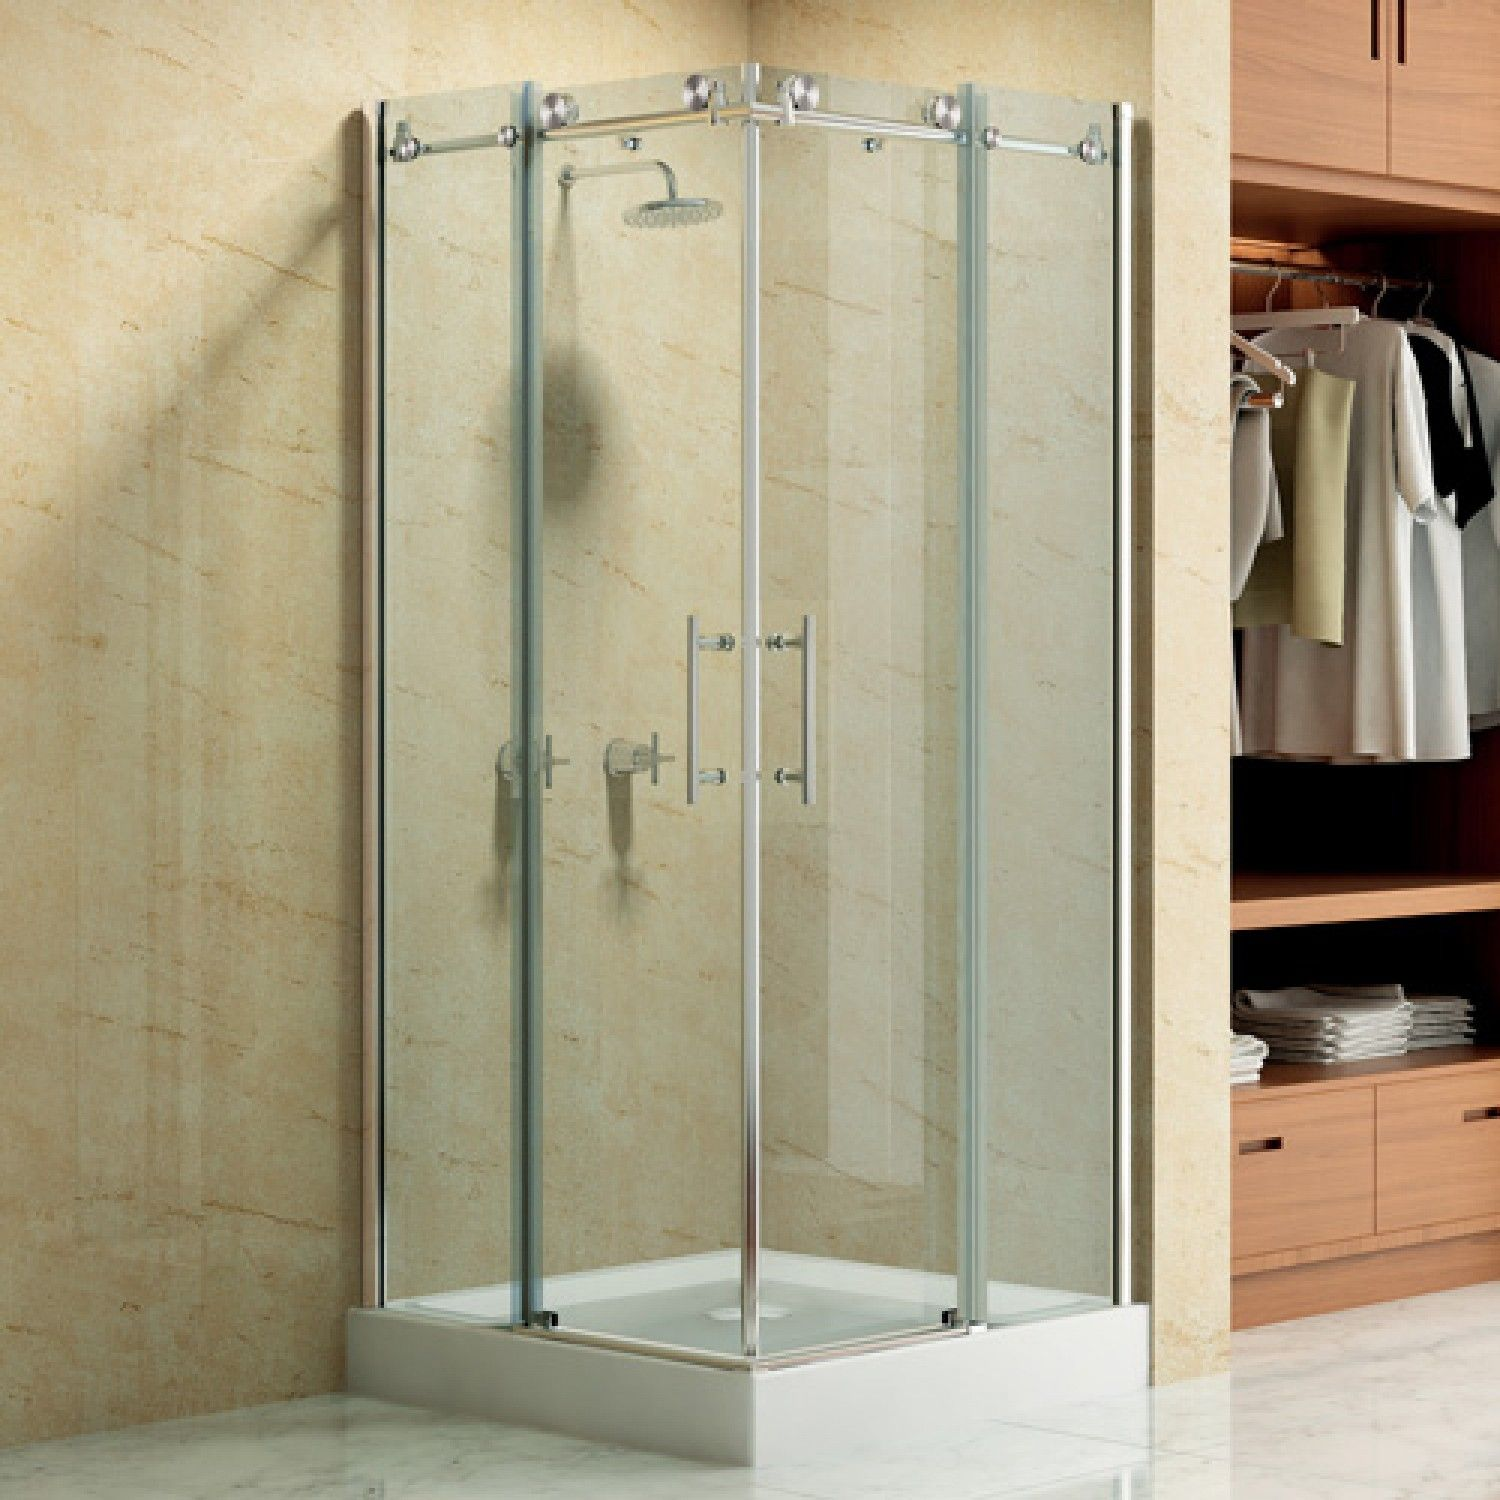 martinkeeis.me] 100+ 36 X 36 Corner Shower Kit Images | Lichterloh ...